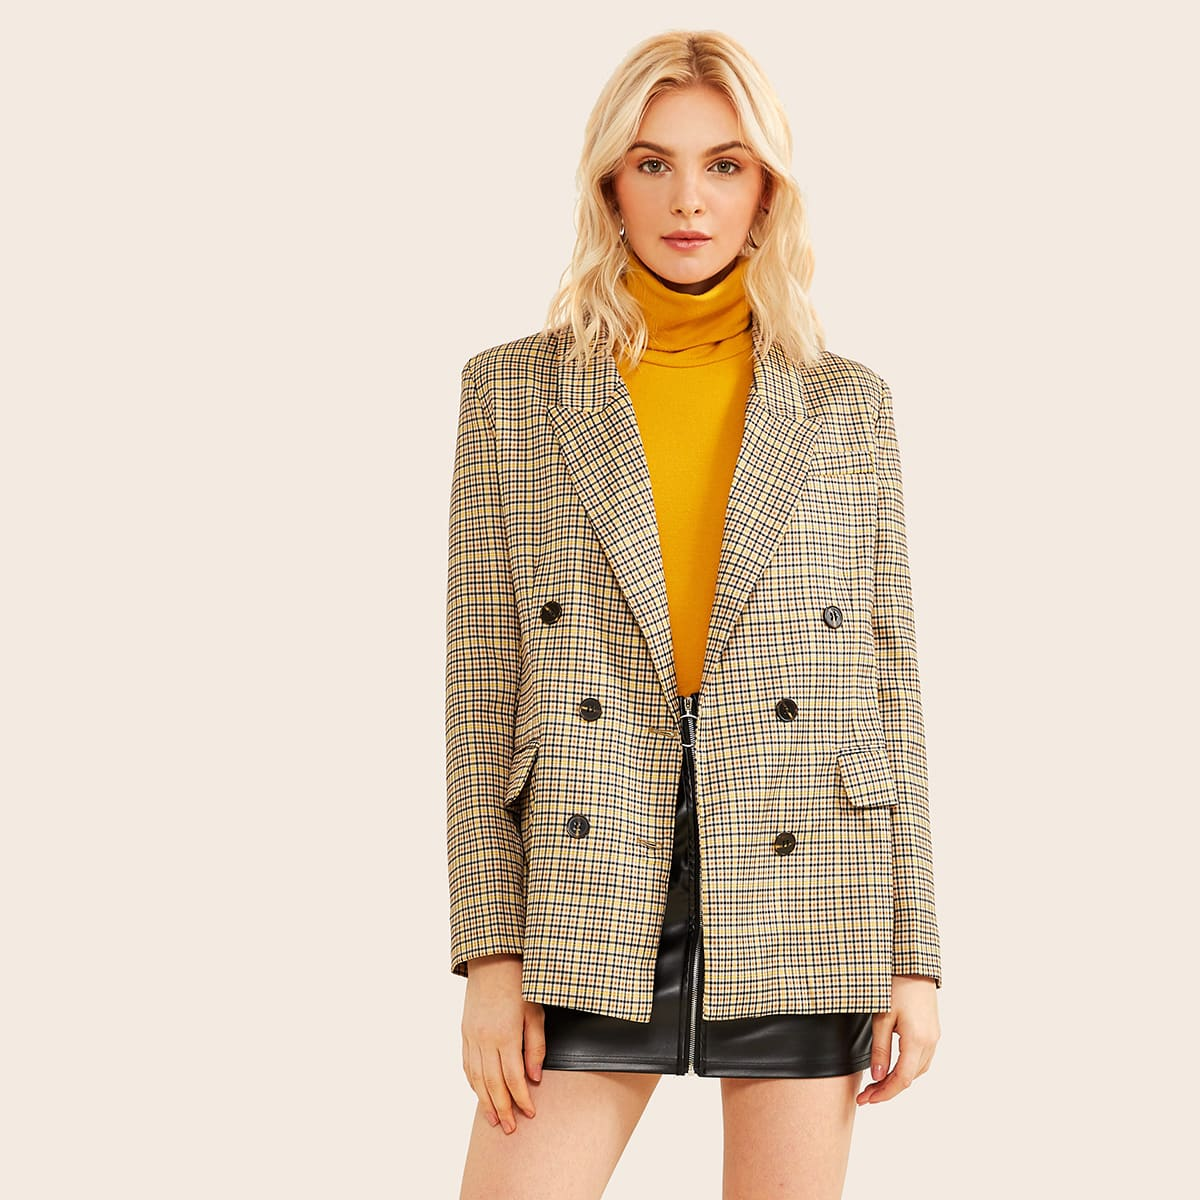 Double Button Flap Pocket Plaid Blazer in Multicolor by ROMWE on GOOFASH